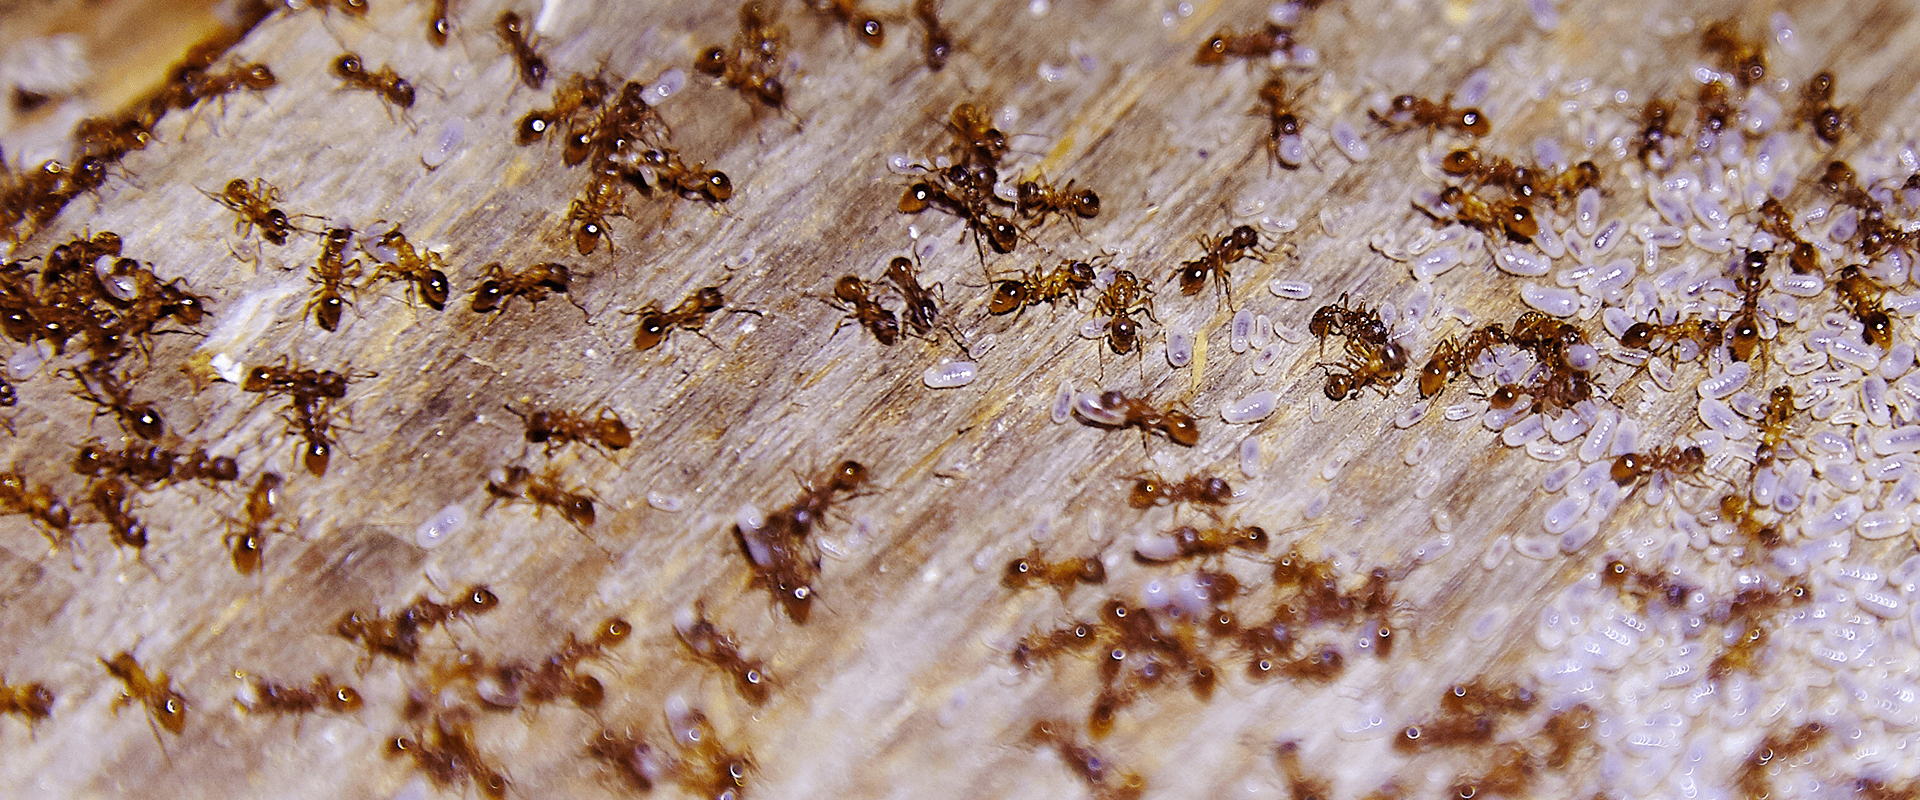 many ants crawling on a house porch in woodburn oregon